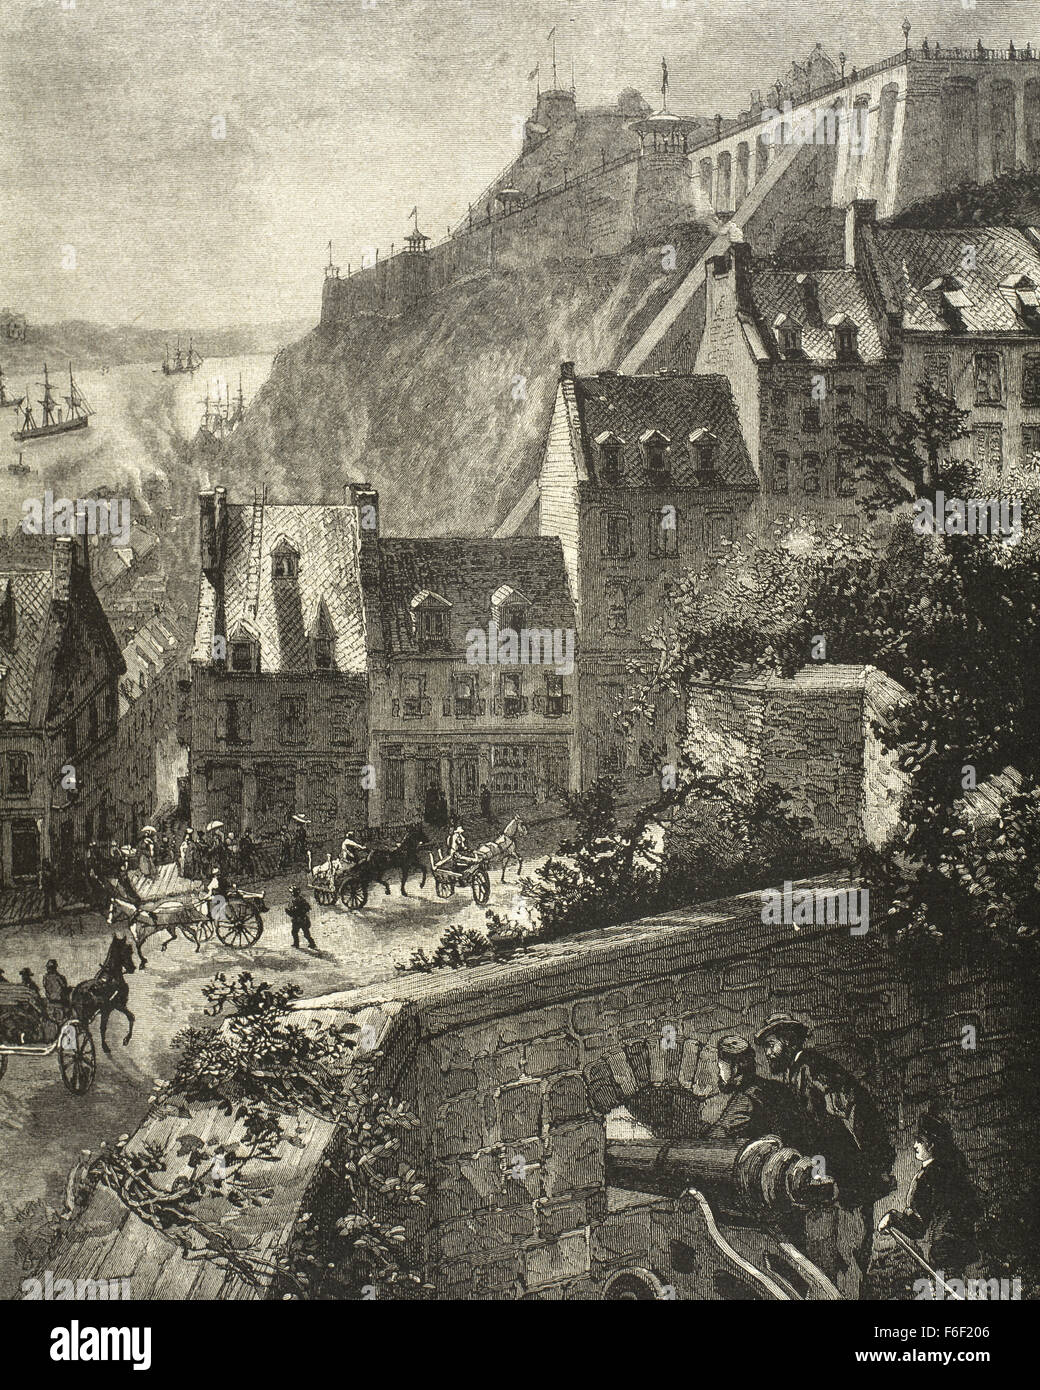 Whalers in action wood engraving published in 1855 stock illustration - Canada Quebec View Of The City From The Ancient Wall Engraving At